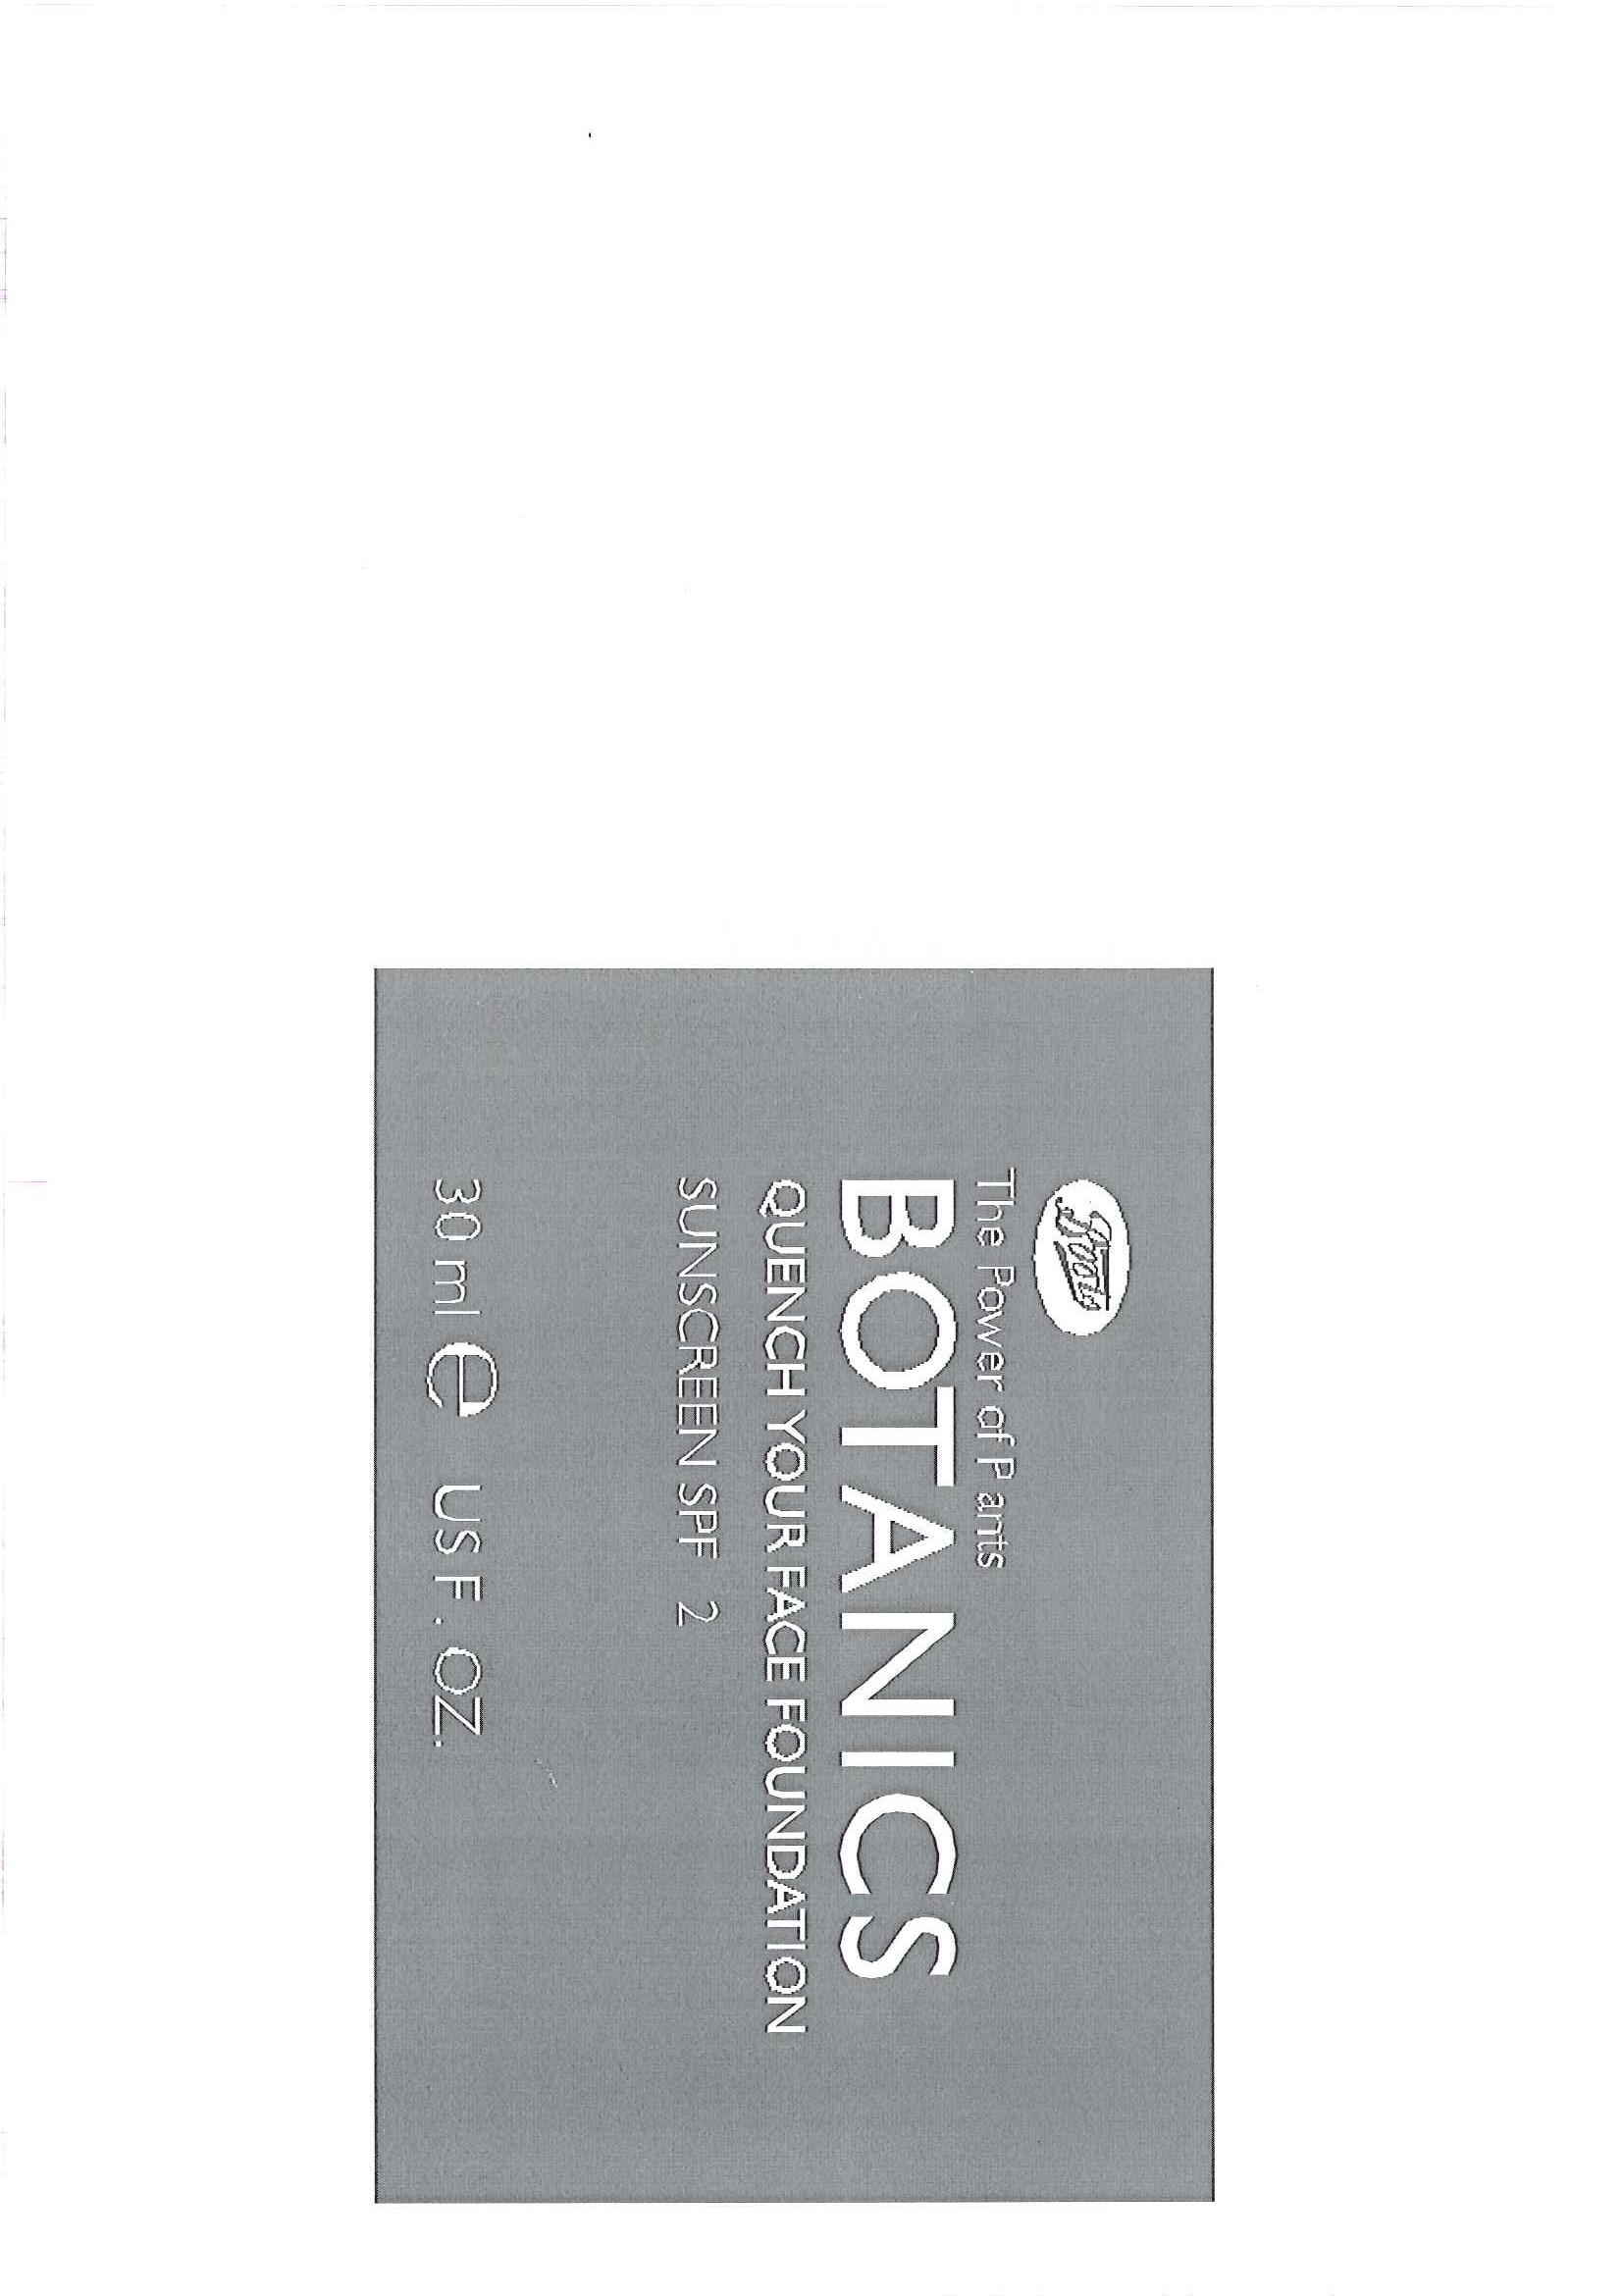 Is Botanics Quench Your Face Foundation Sunscreen Spf 12 Star Anise 40 safe while breastfeeding